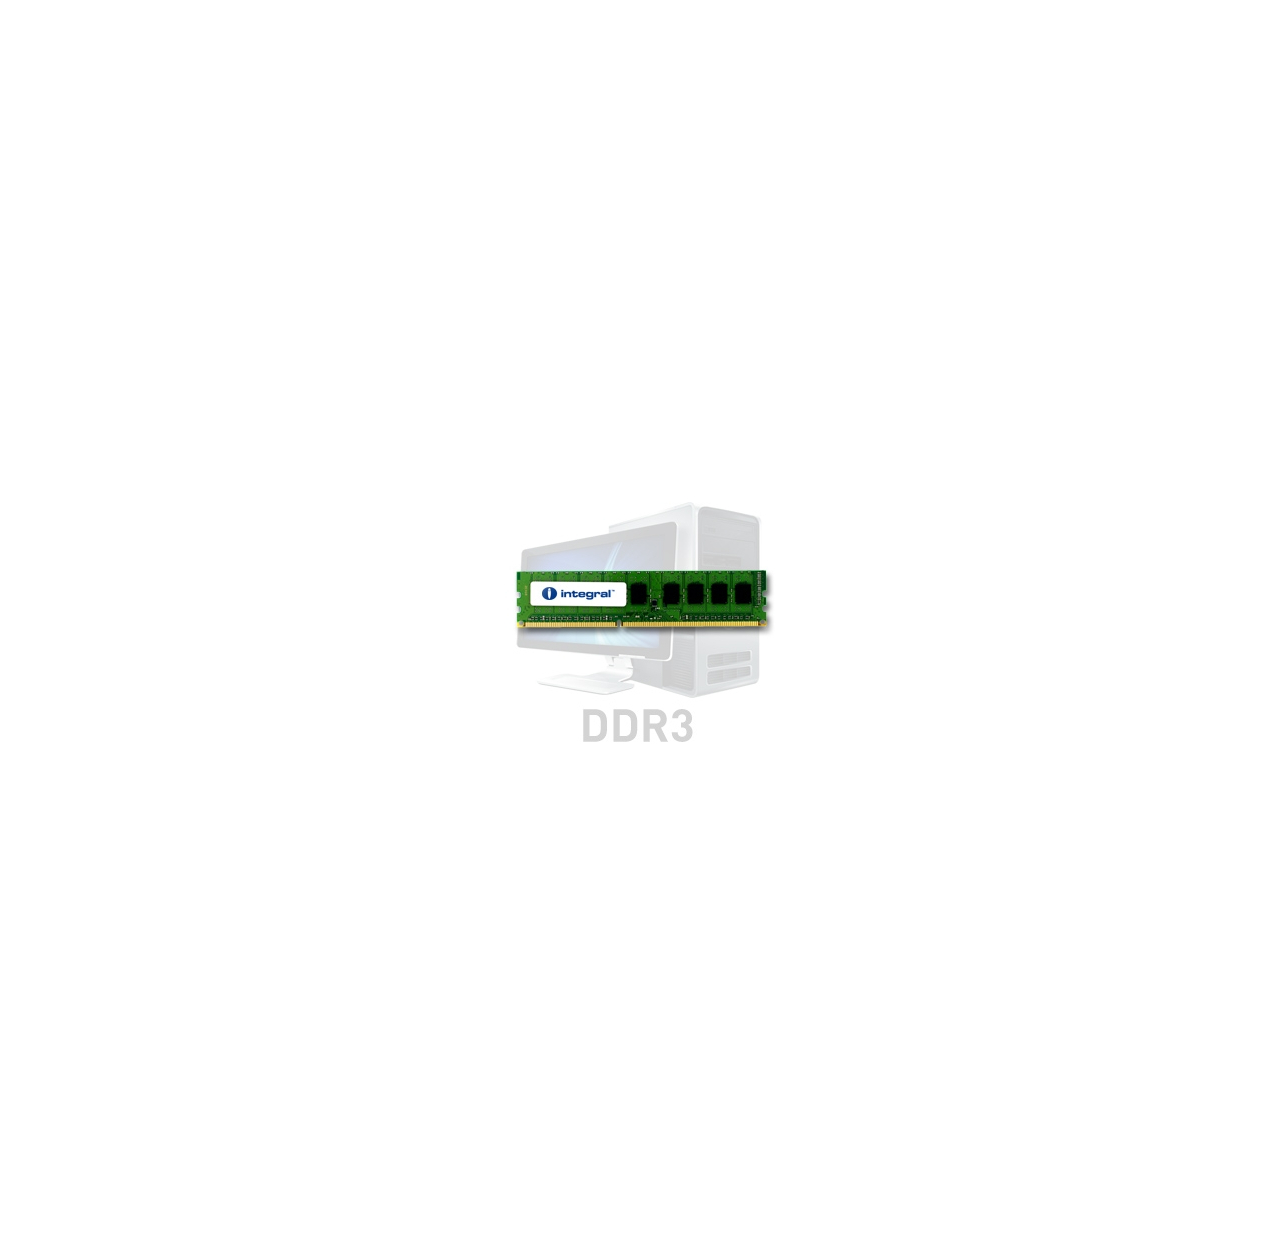 Pamięć RAM       Integral 16GB DDR3 1600Mhz DIMM KIT (2x8GB) CL11 R2 UNBUFFERED 1.5V